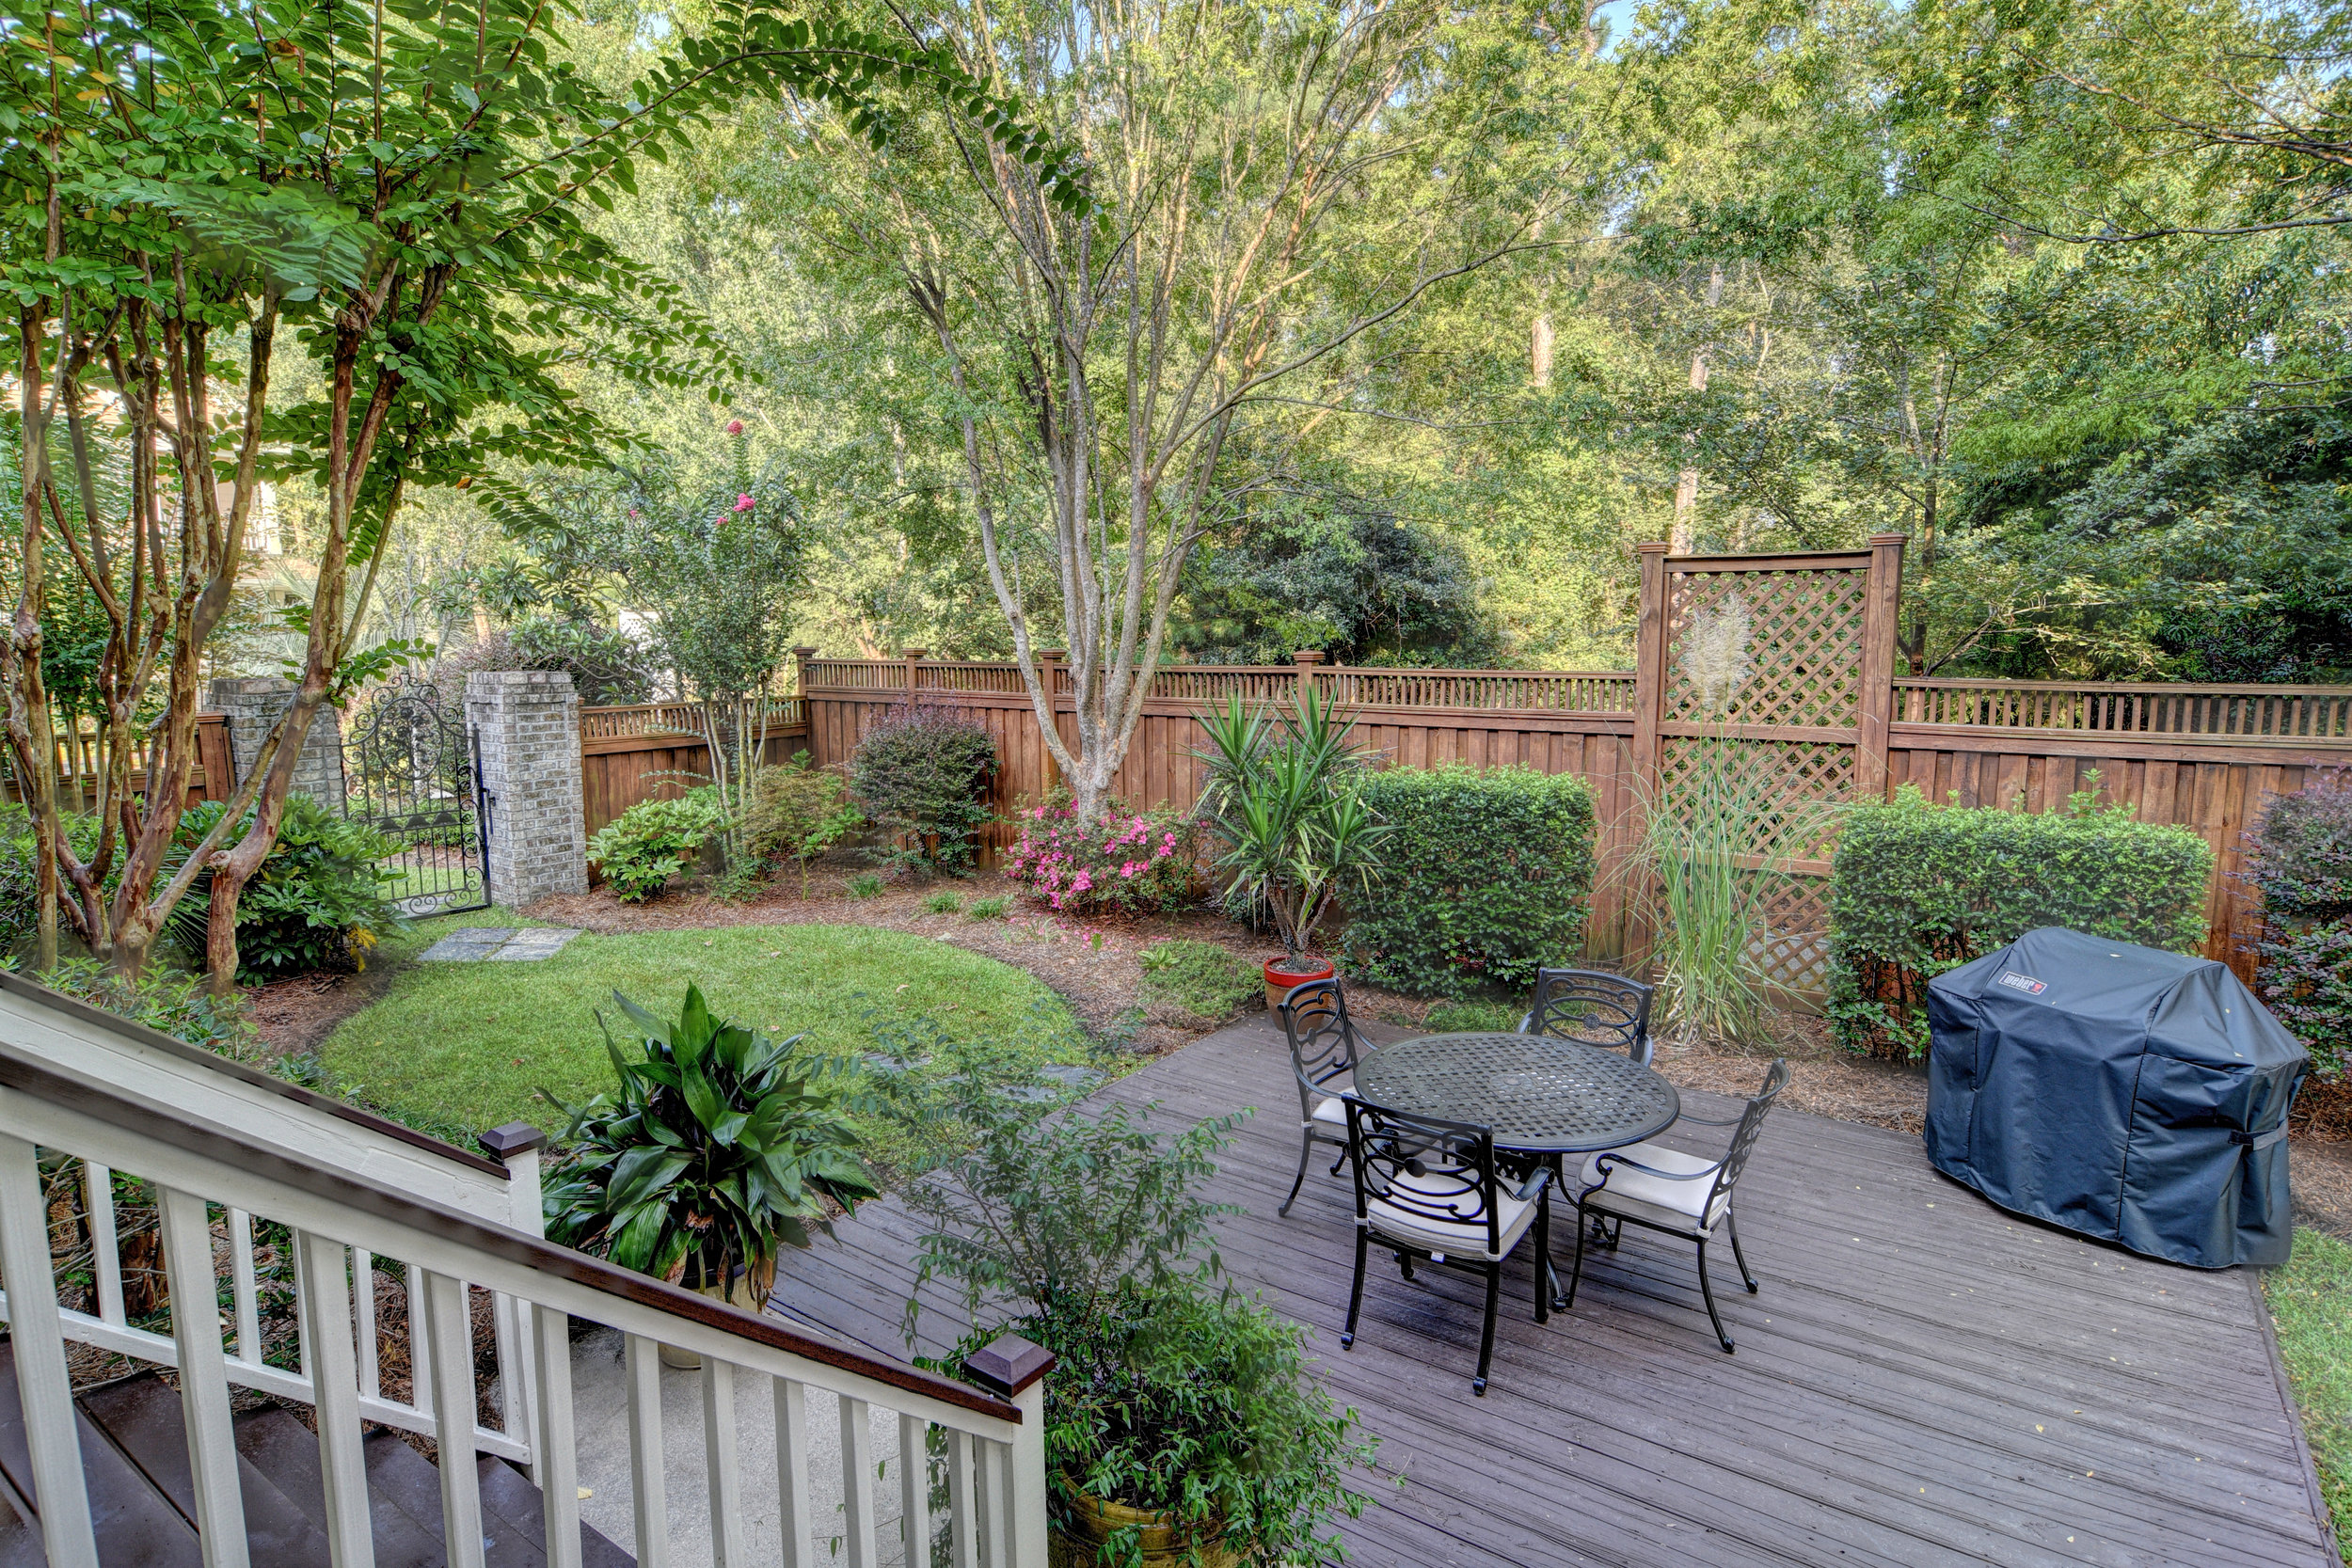 3121 Dever Ct Wilmington NC-print-011-49-DSC 9323 4 5-4200x2801-300dpi.jpg